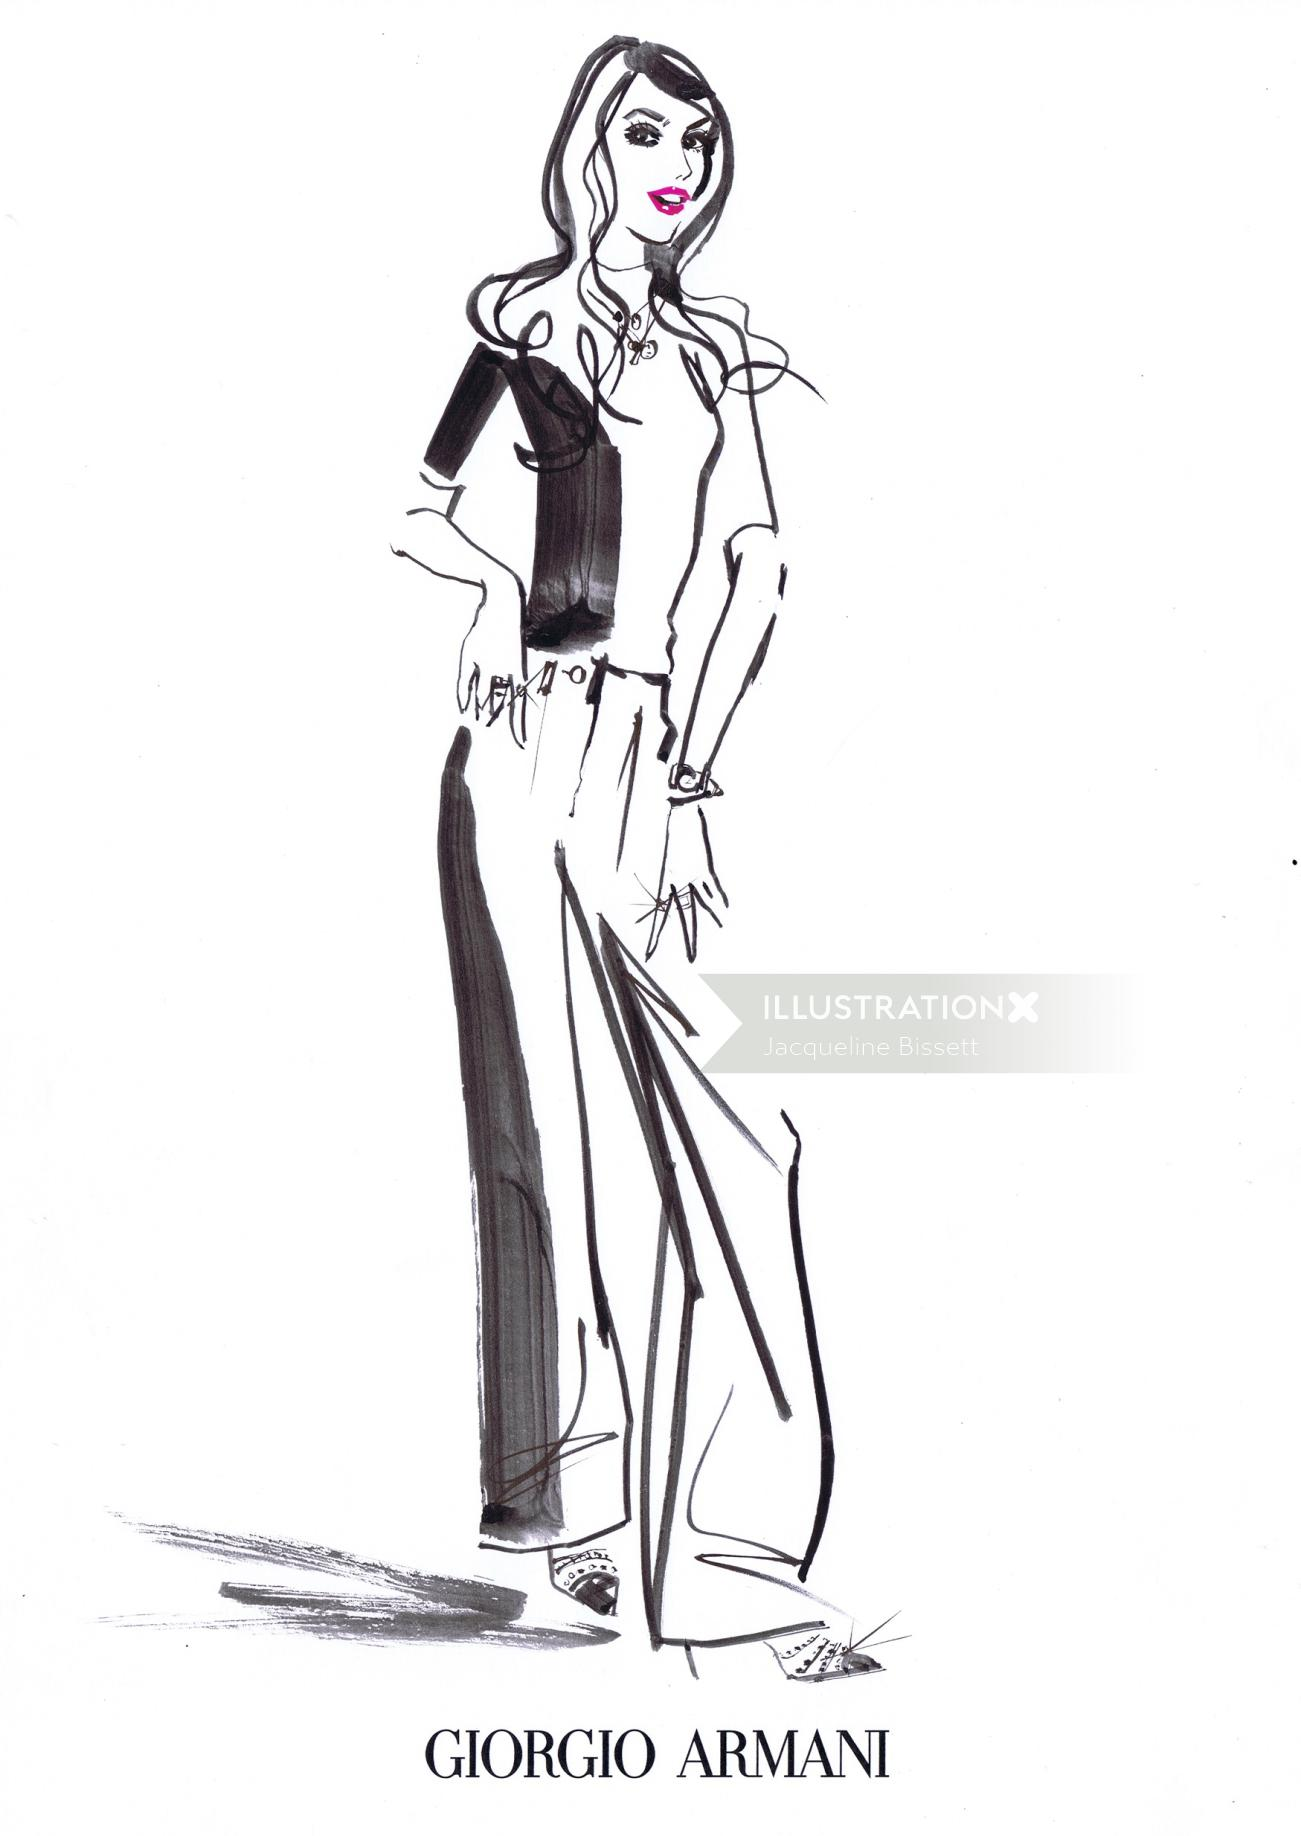 Pencil sketch of stylish young woman